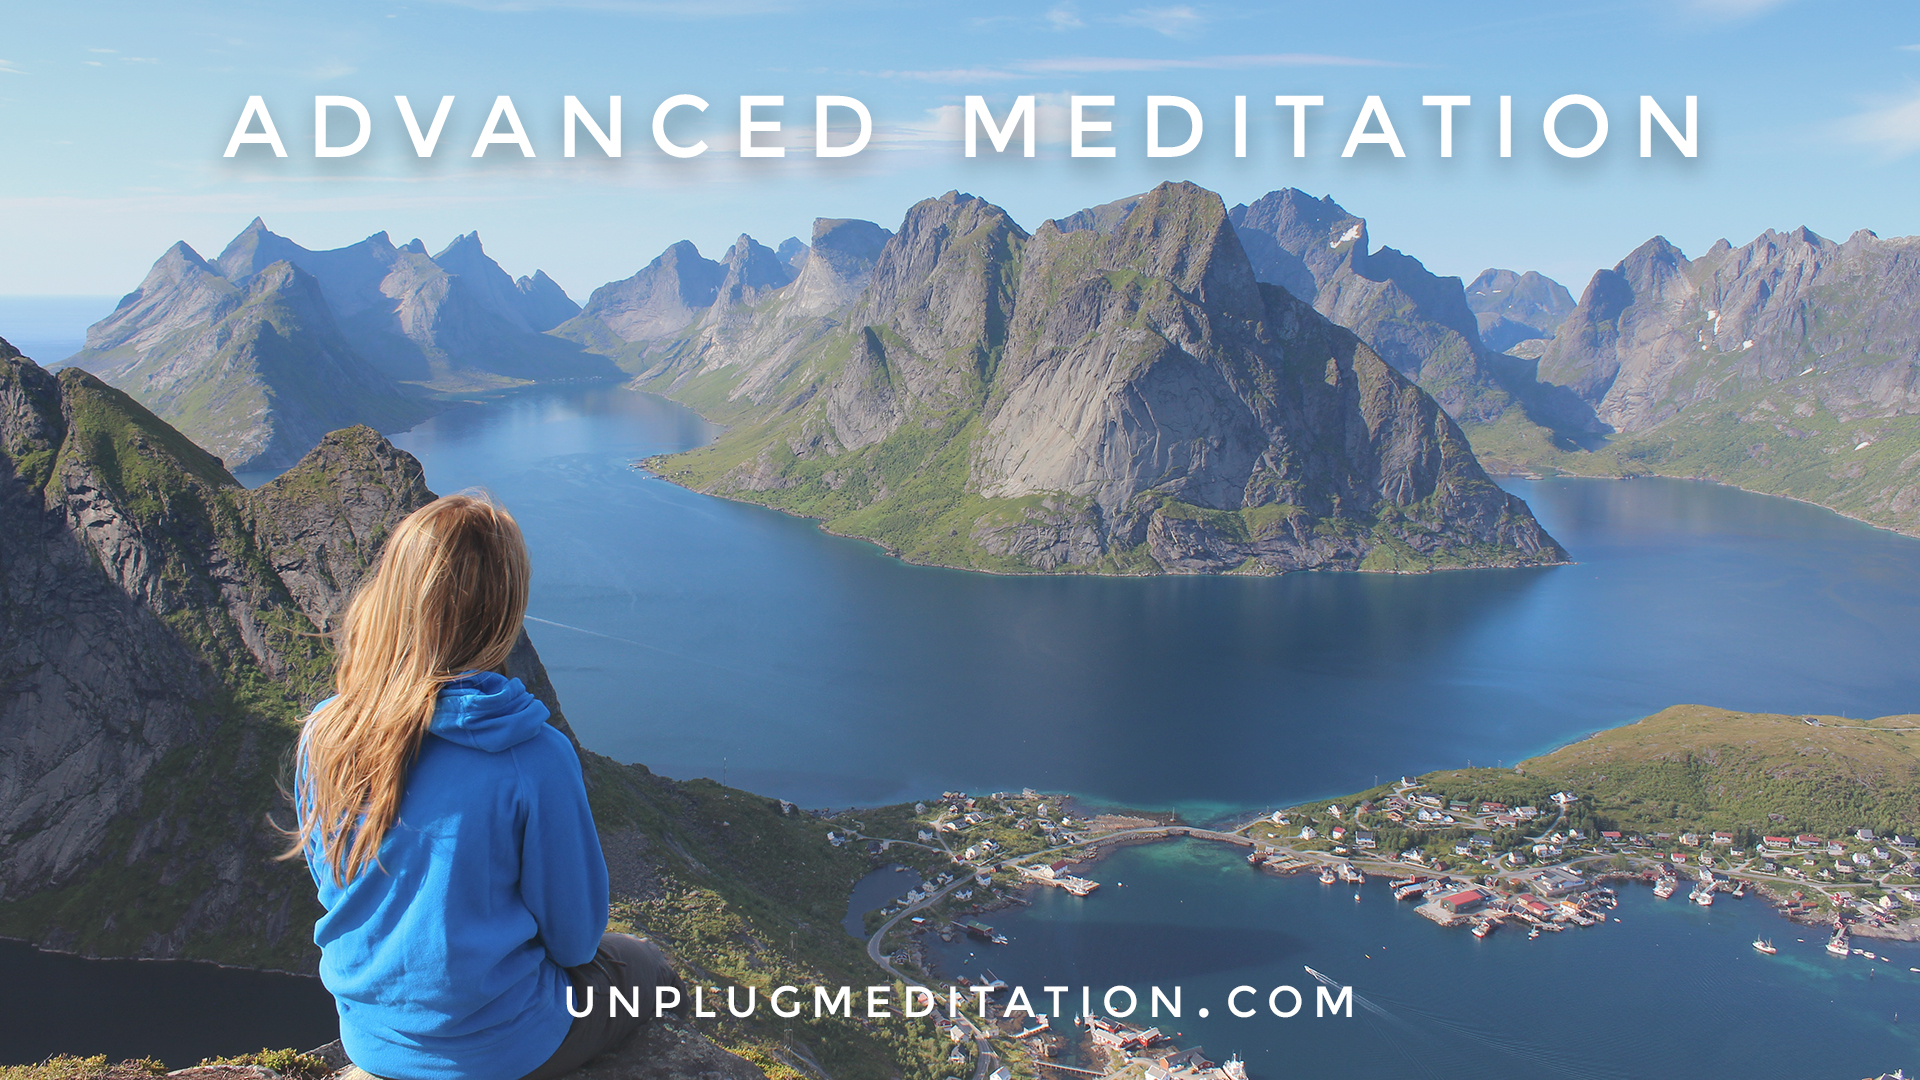 Unplug-Meditation-VHX-Covers-Artwork_ADVANCED-MEDITATION.jpg